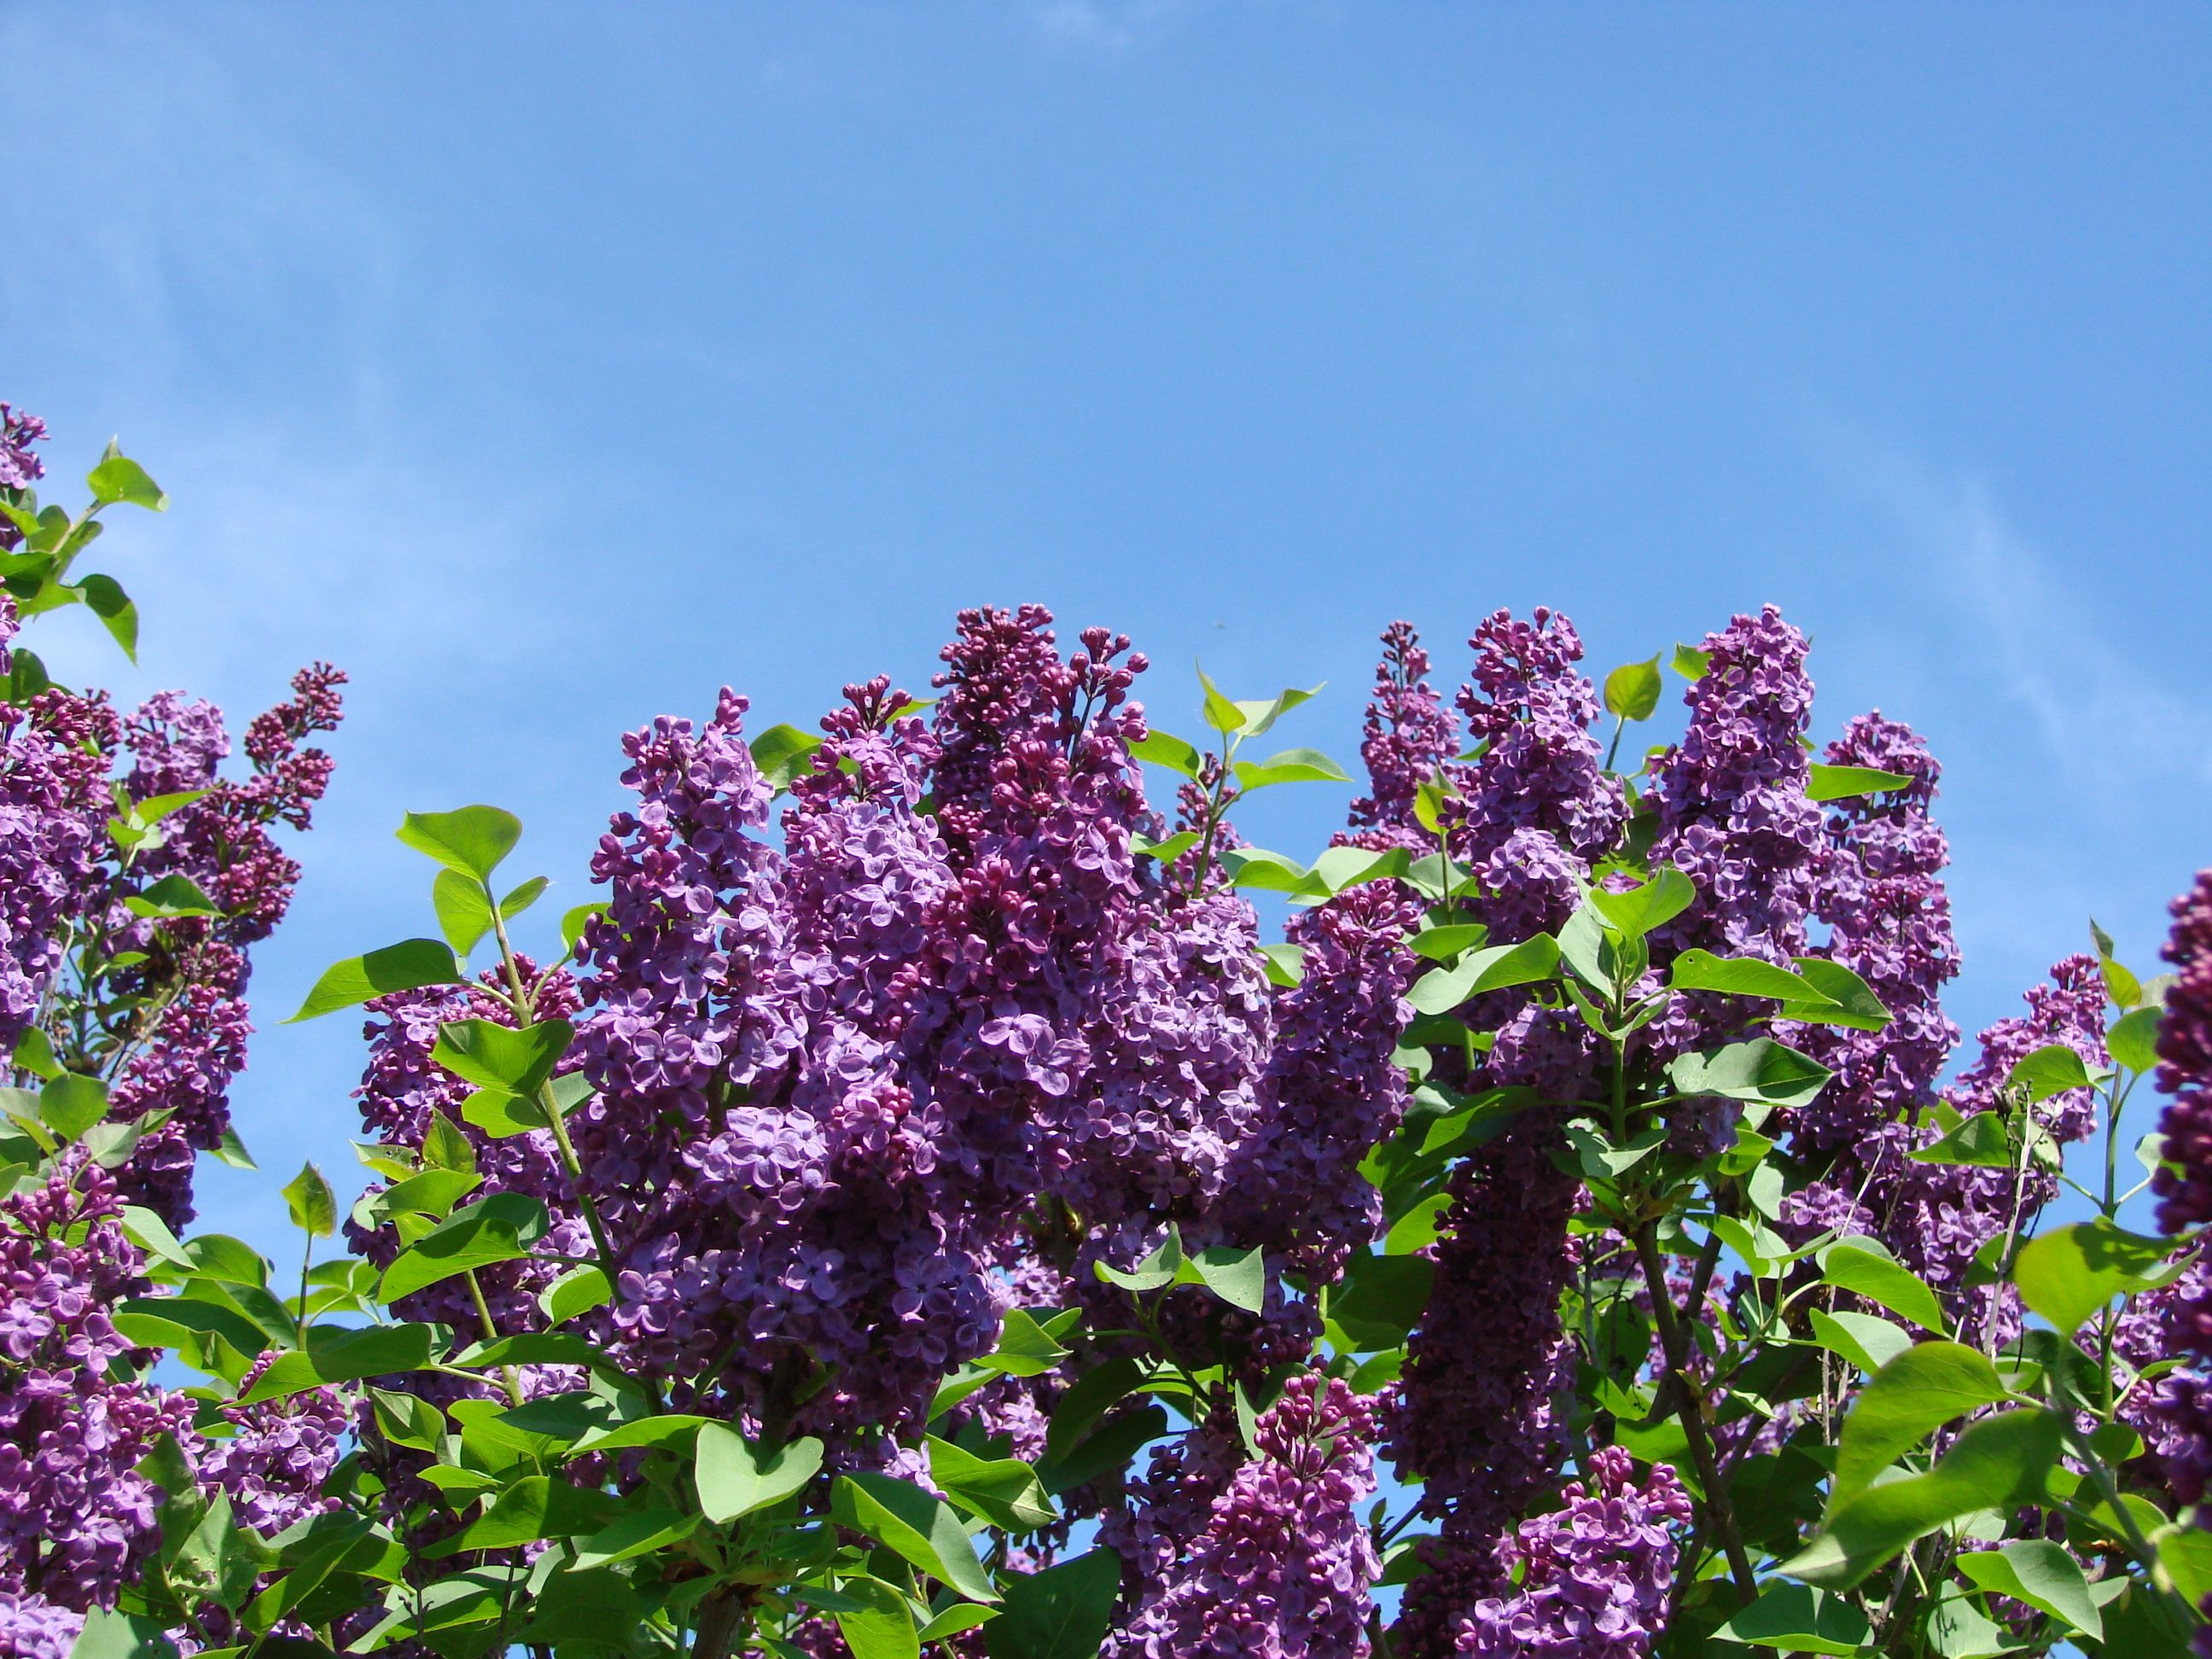 Purple lilac bushes in bloom